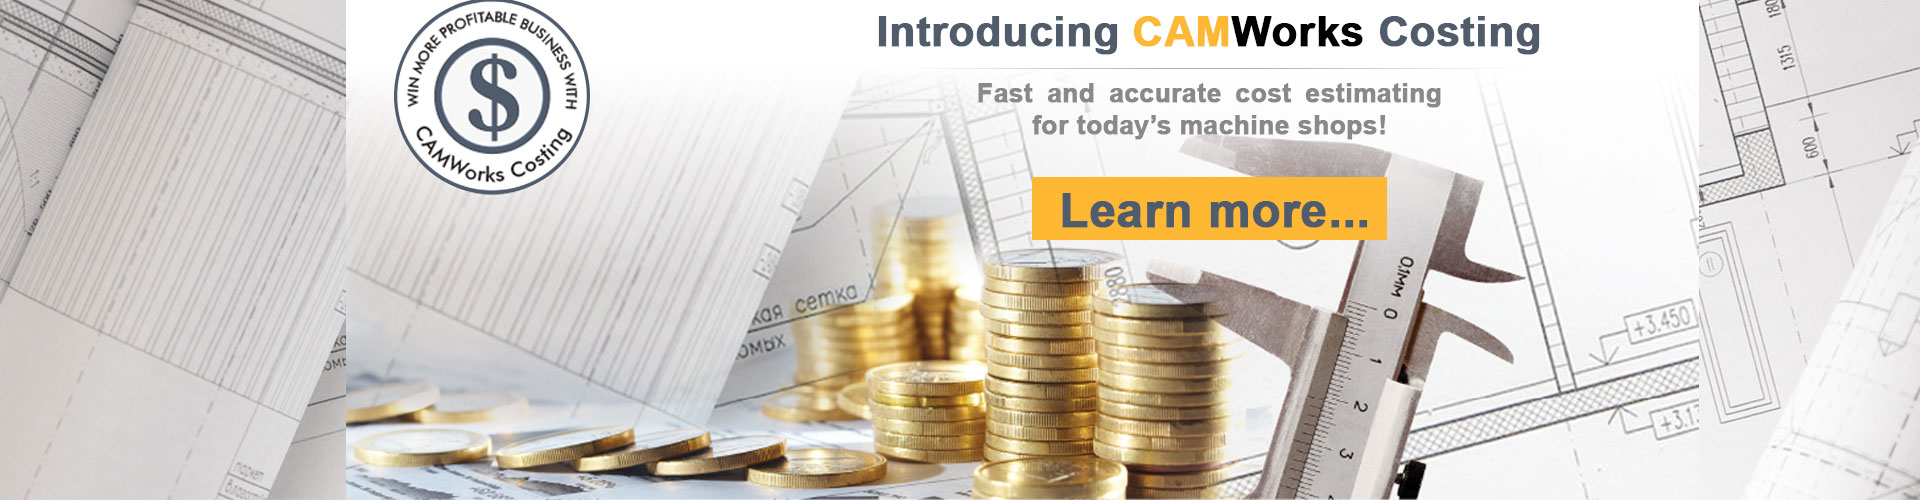 CAMWorks-Costing-Banner-1920x500